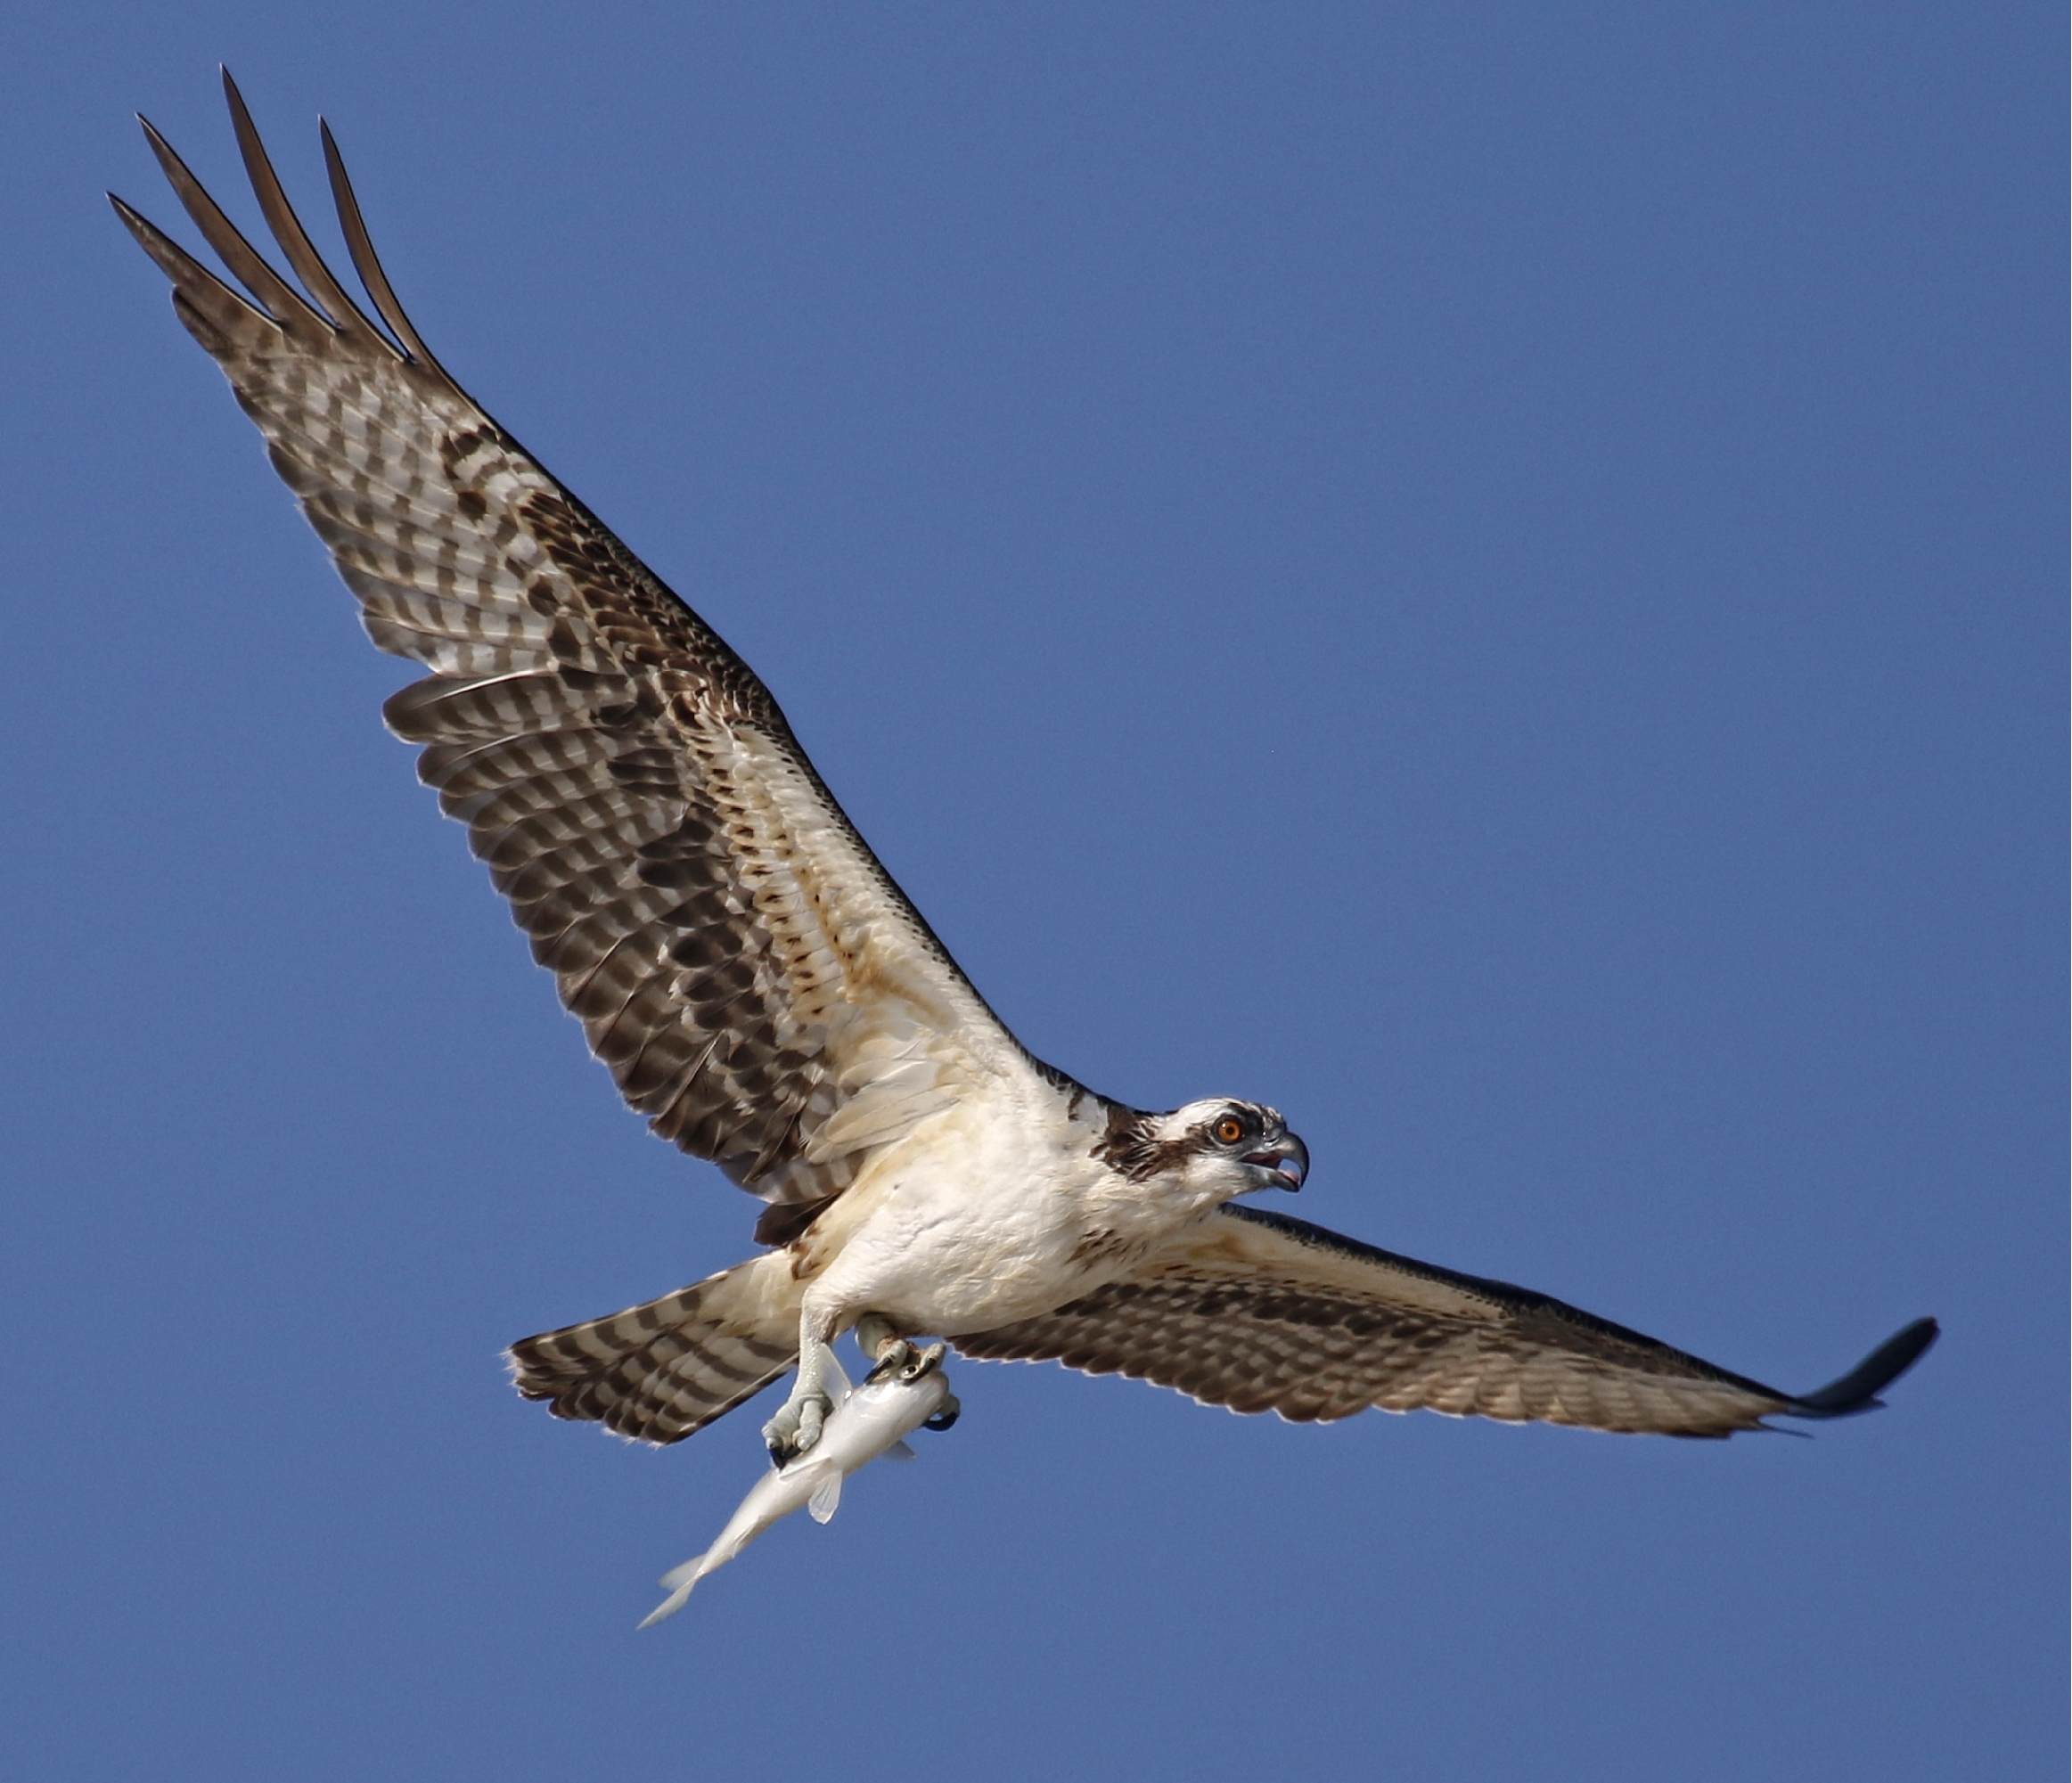 Juvenile Osprey get the hang of fishing...while the fish hangs around for lunch!